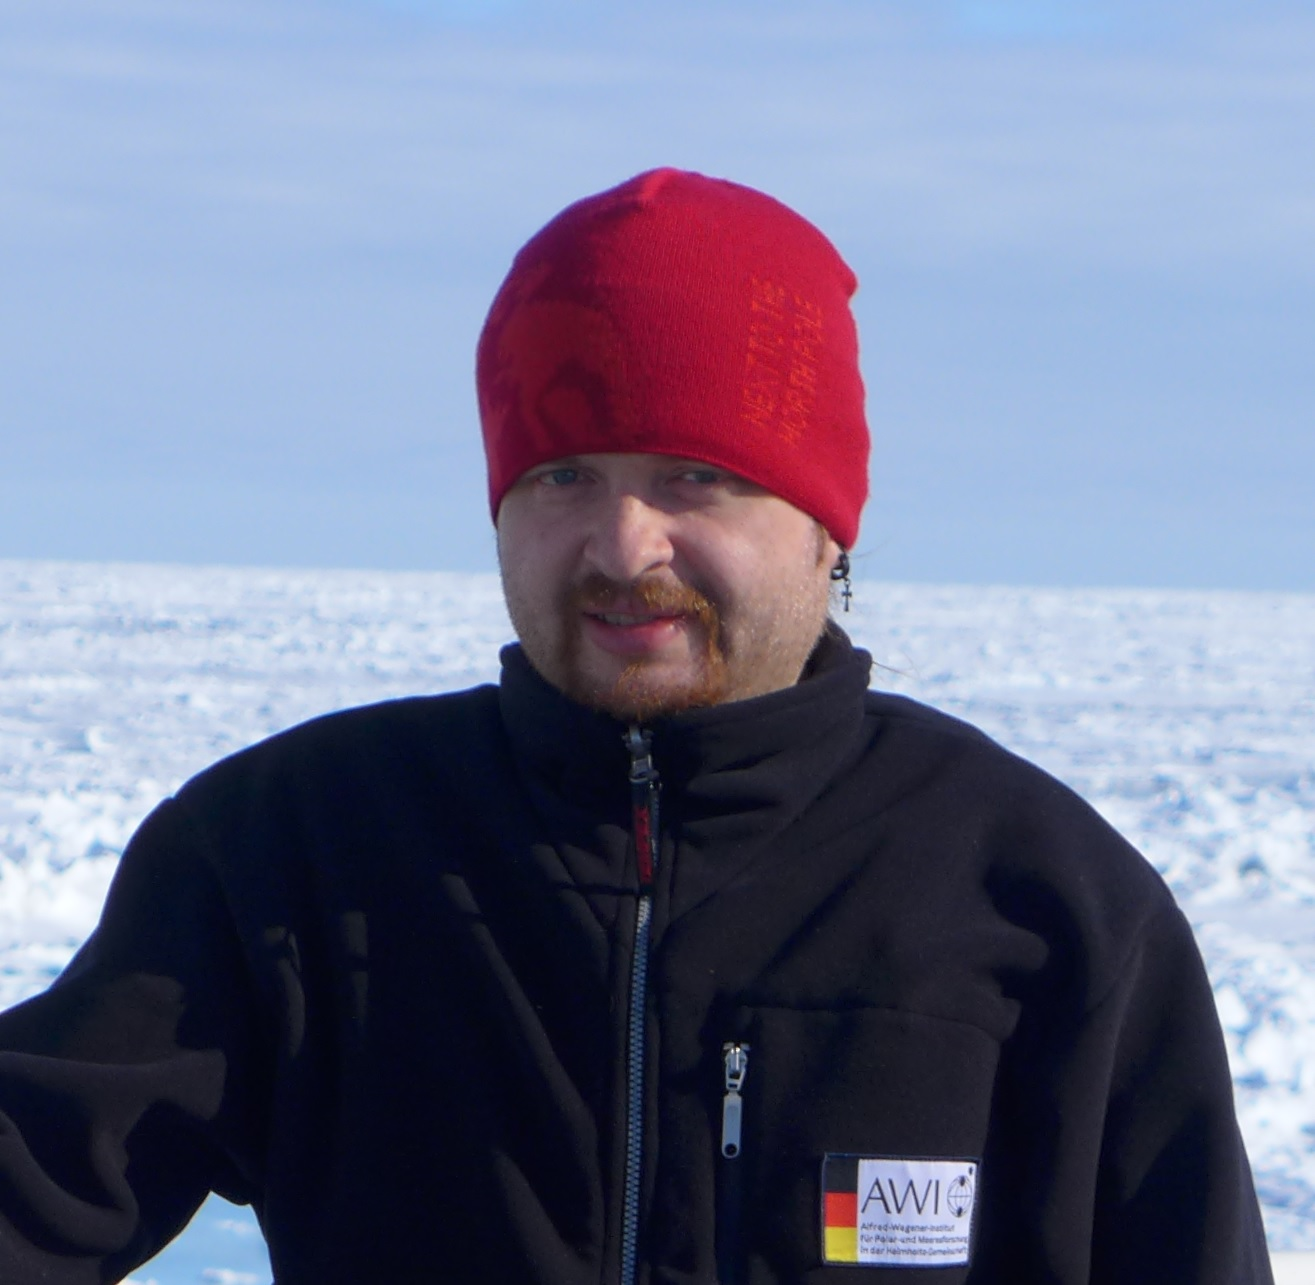 Ocean simulations in Sea-Ice modelling group at McGill University, he enjoys traveling, music and playing chess with his son Robert.